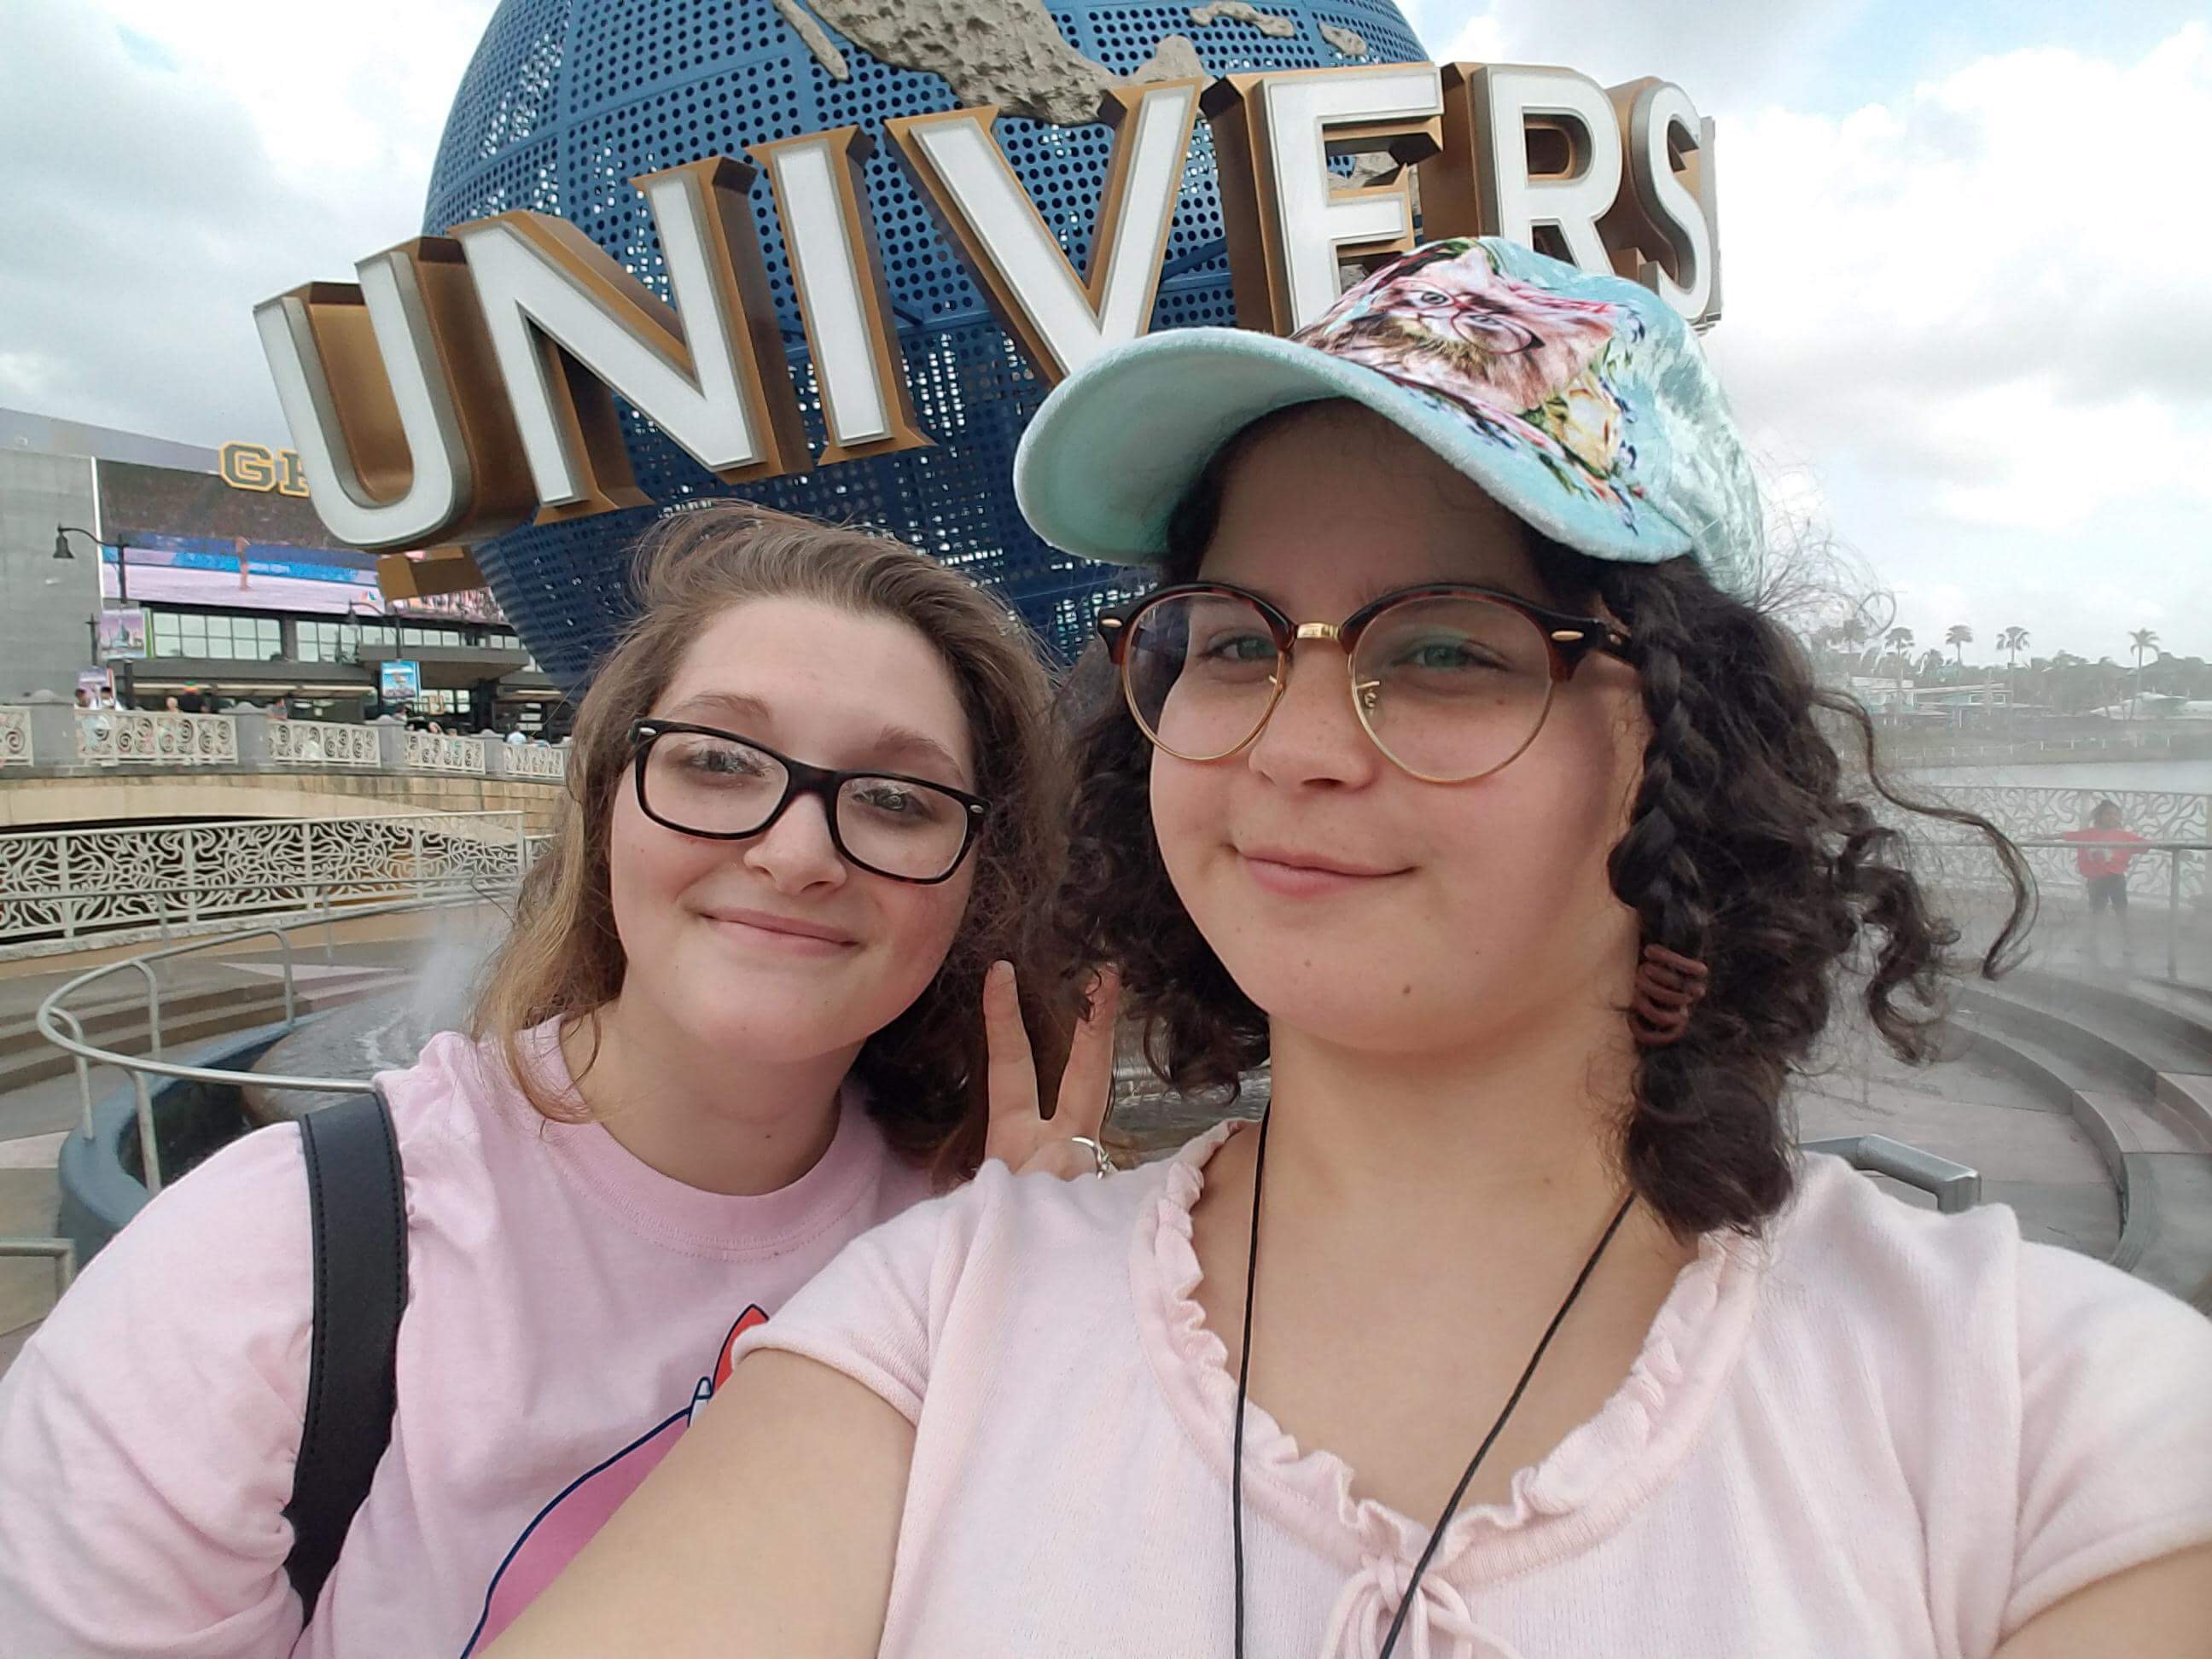 Latin State Trip Theme Park Day (Naccole and Haley)